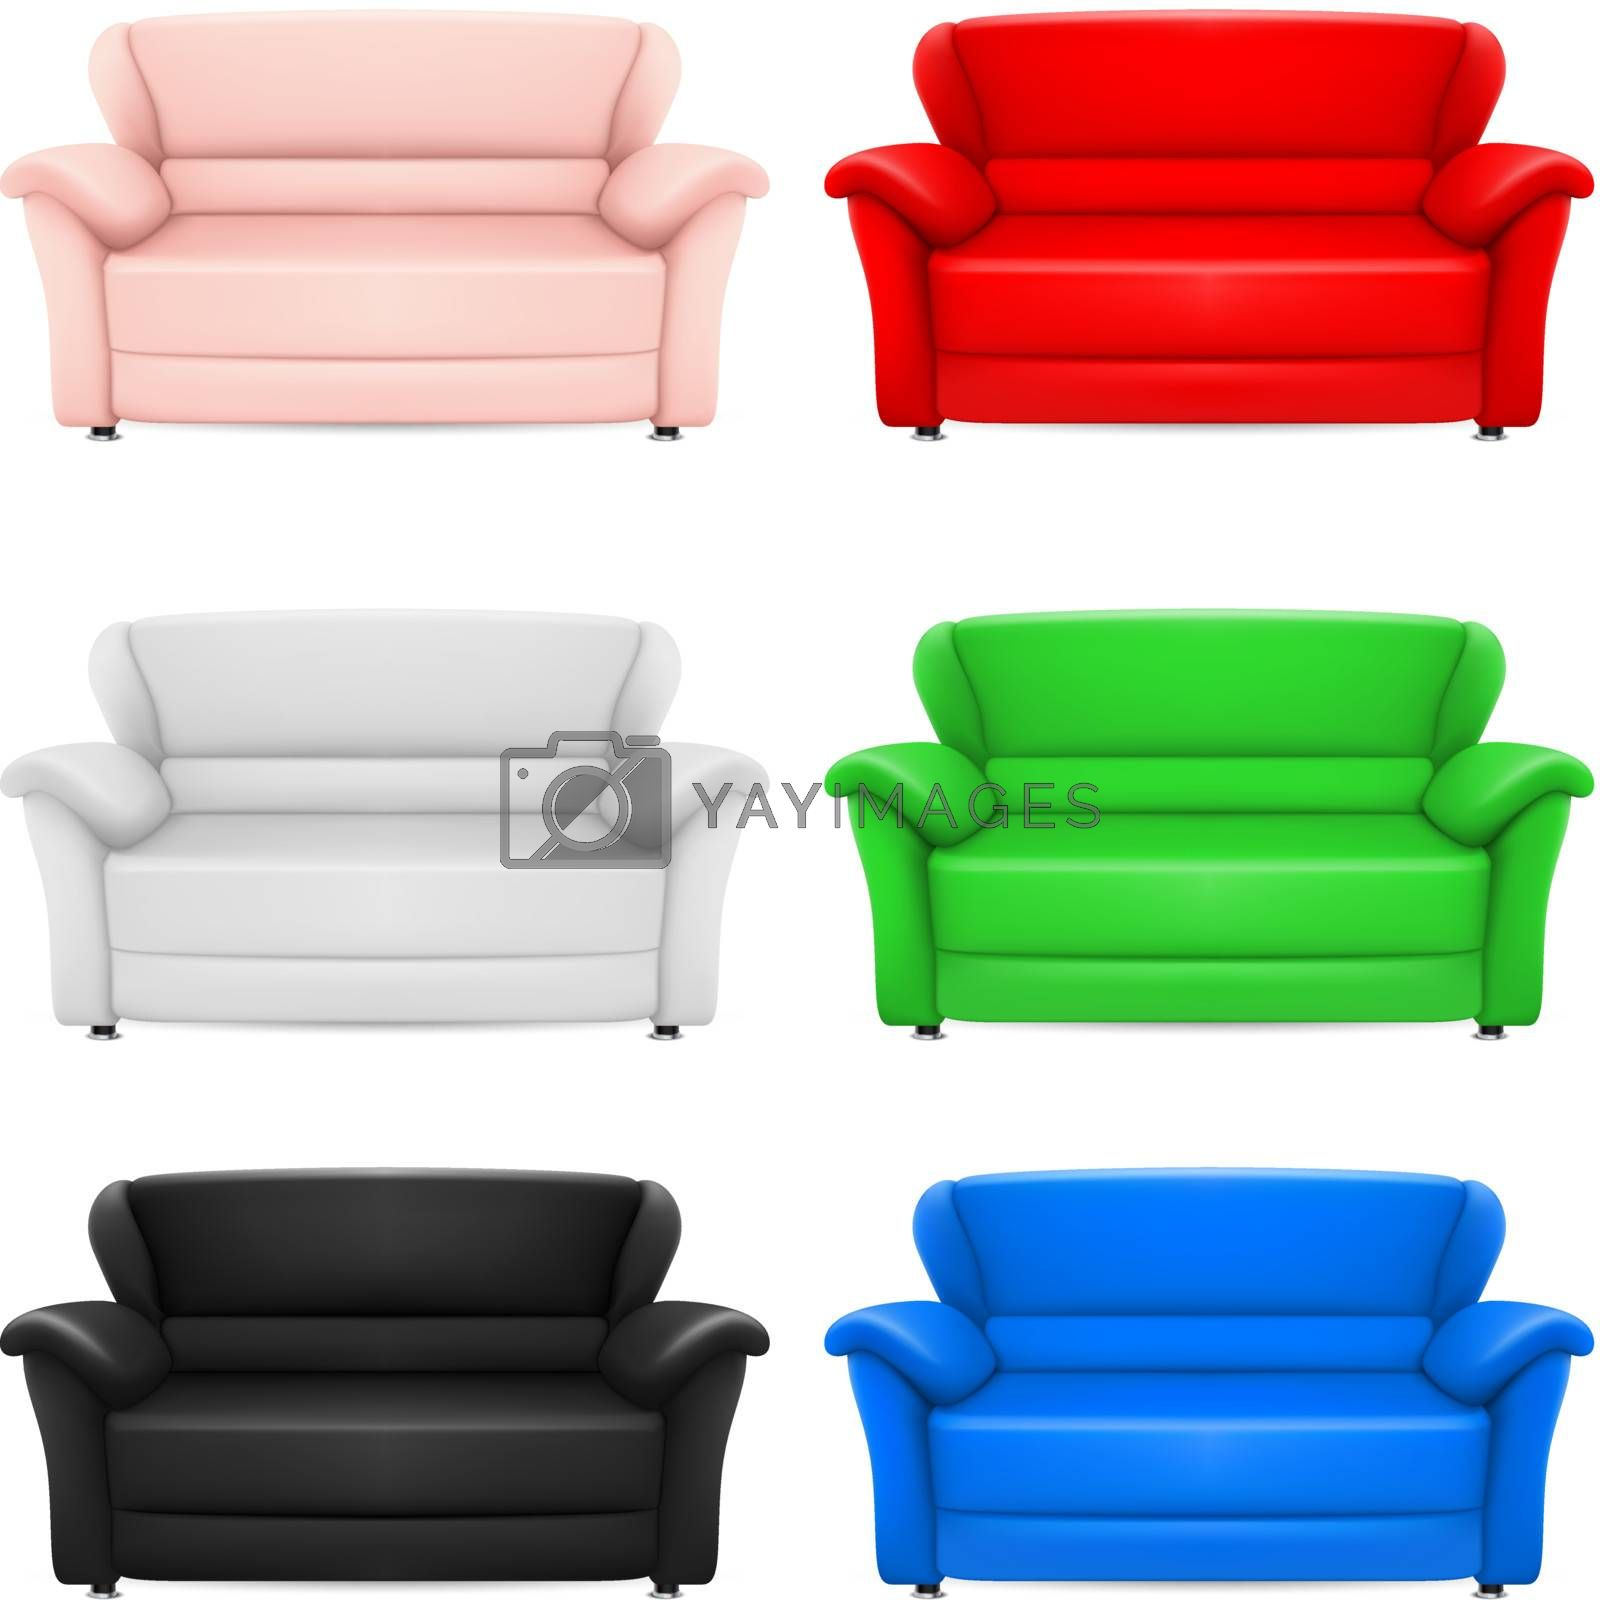 A set of multi-colored models of sofas. Illustration on white